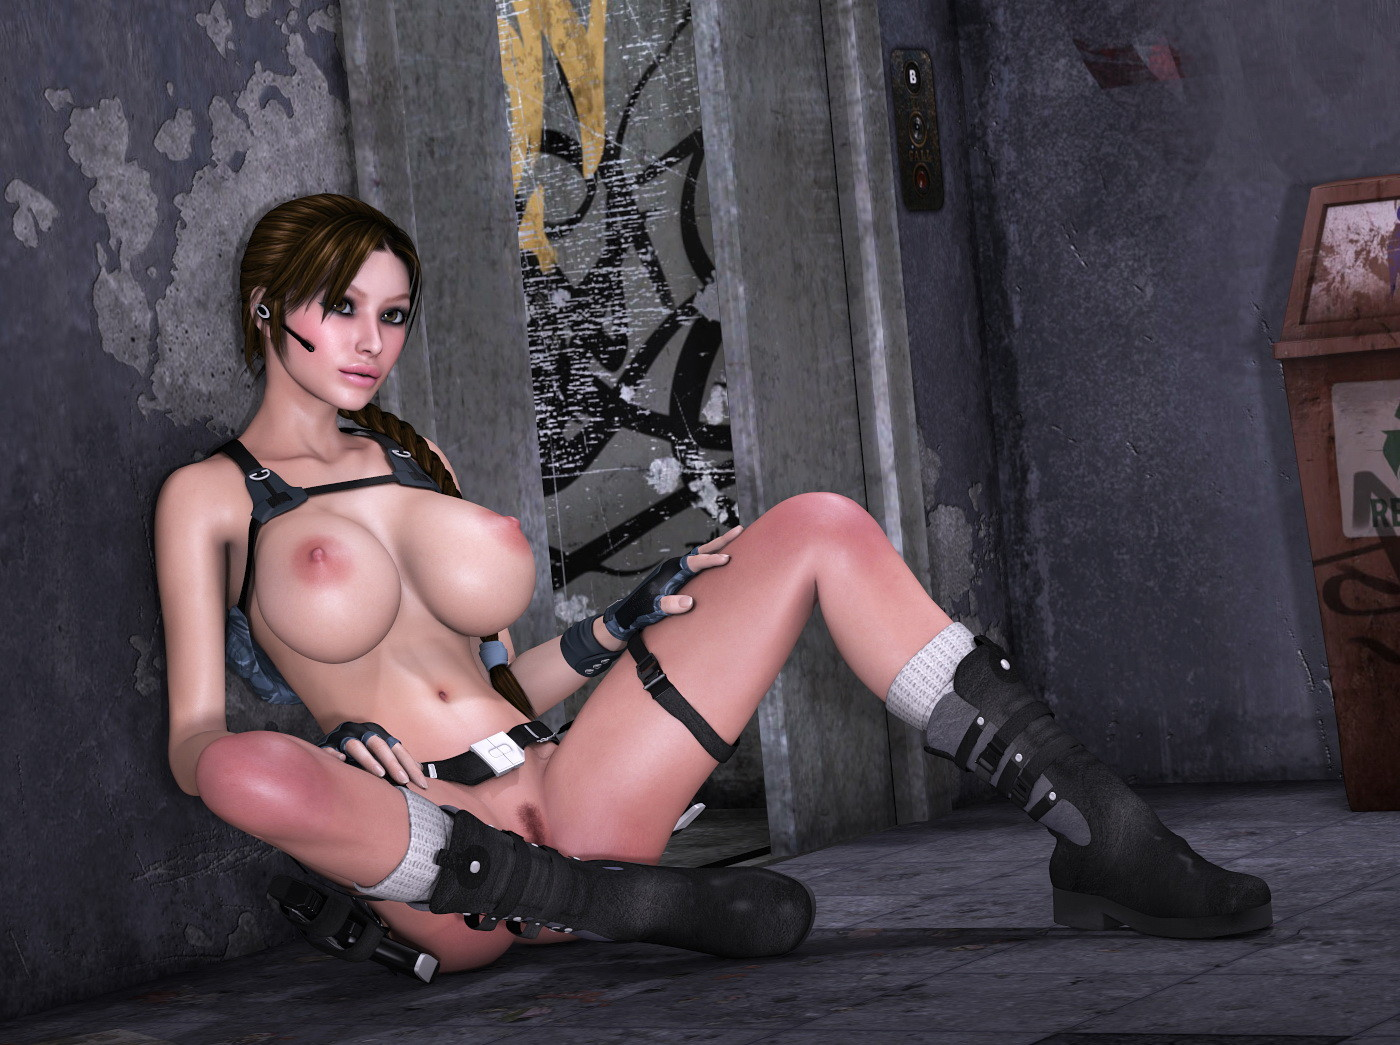 Free lara croft hentai monster porncraft image